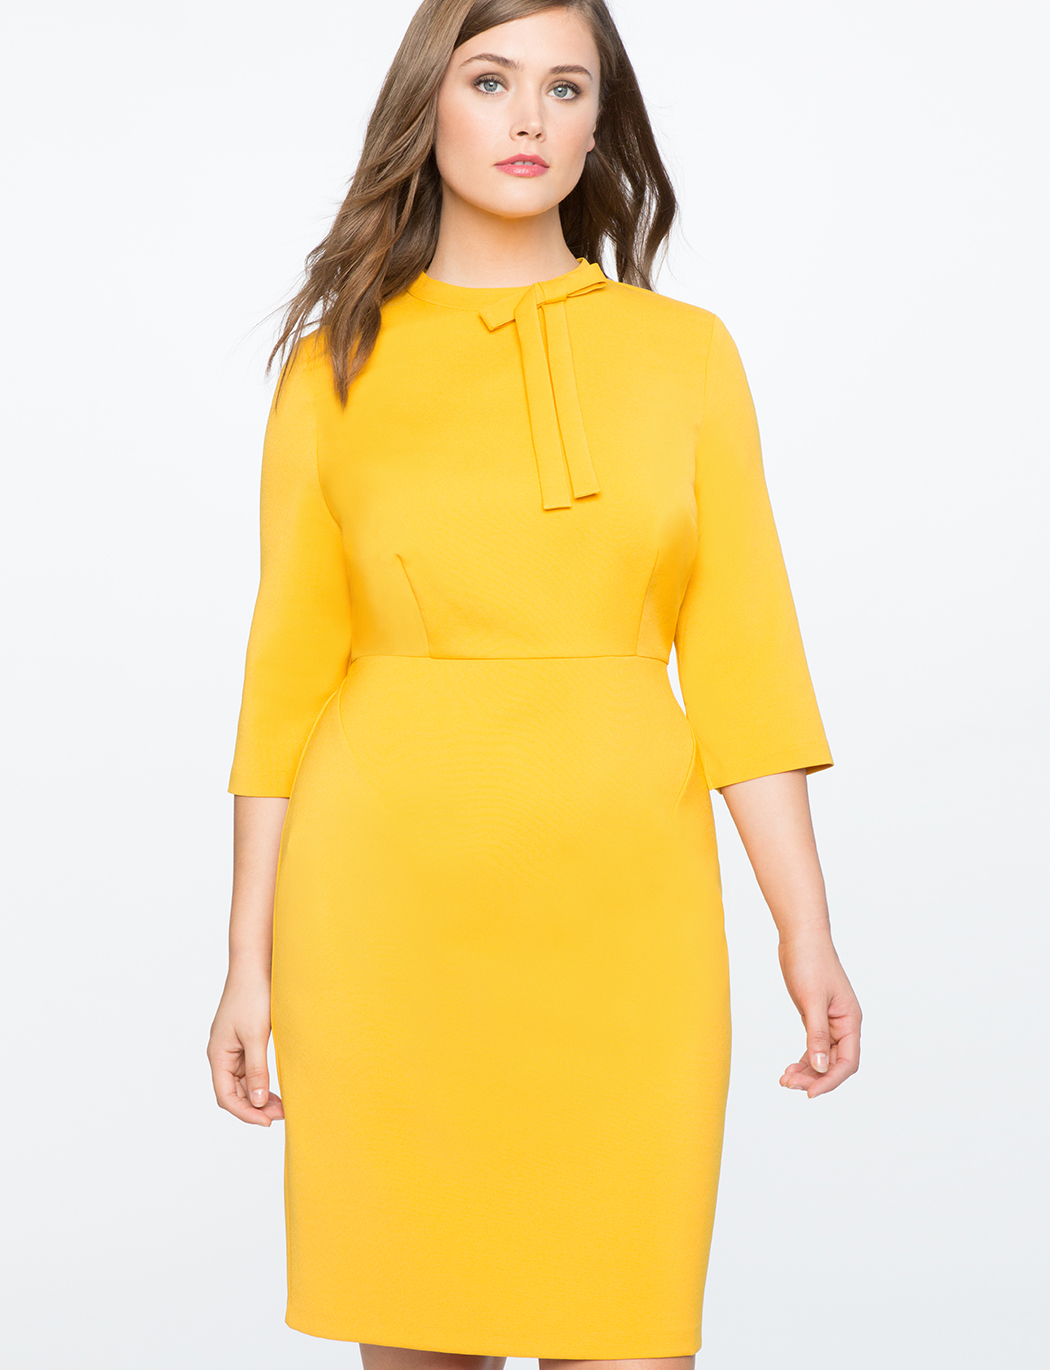 Structured Work Dress with Bow Detail | Women\'s Plus Size Dresses | ELOQUII